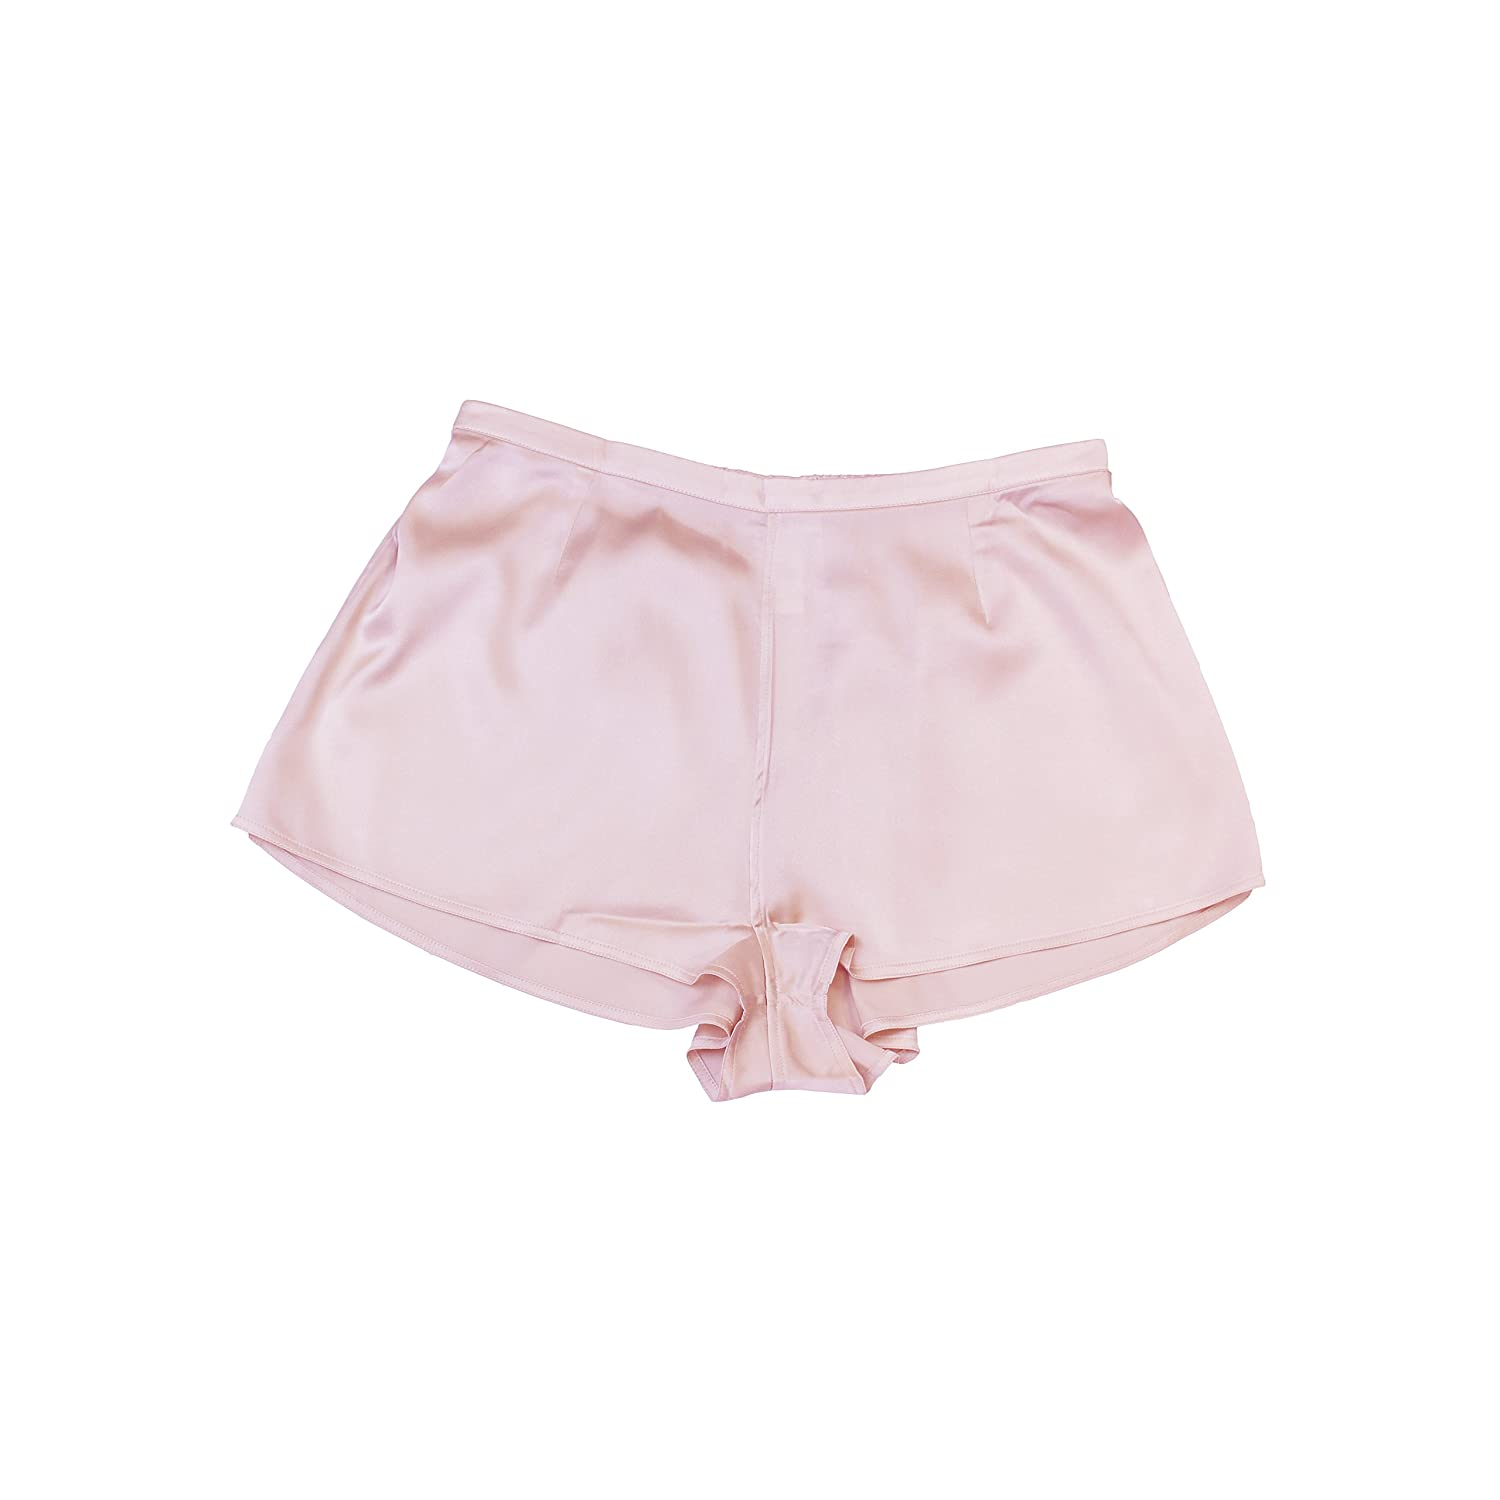 b5cd3000fef Jasmine Silk Lady s Classic Silk French Knickers boxers Extra Large (16-18)  Pink (Extra Large)  Amazon.co.uk  Kitchen   Home